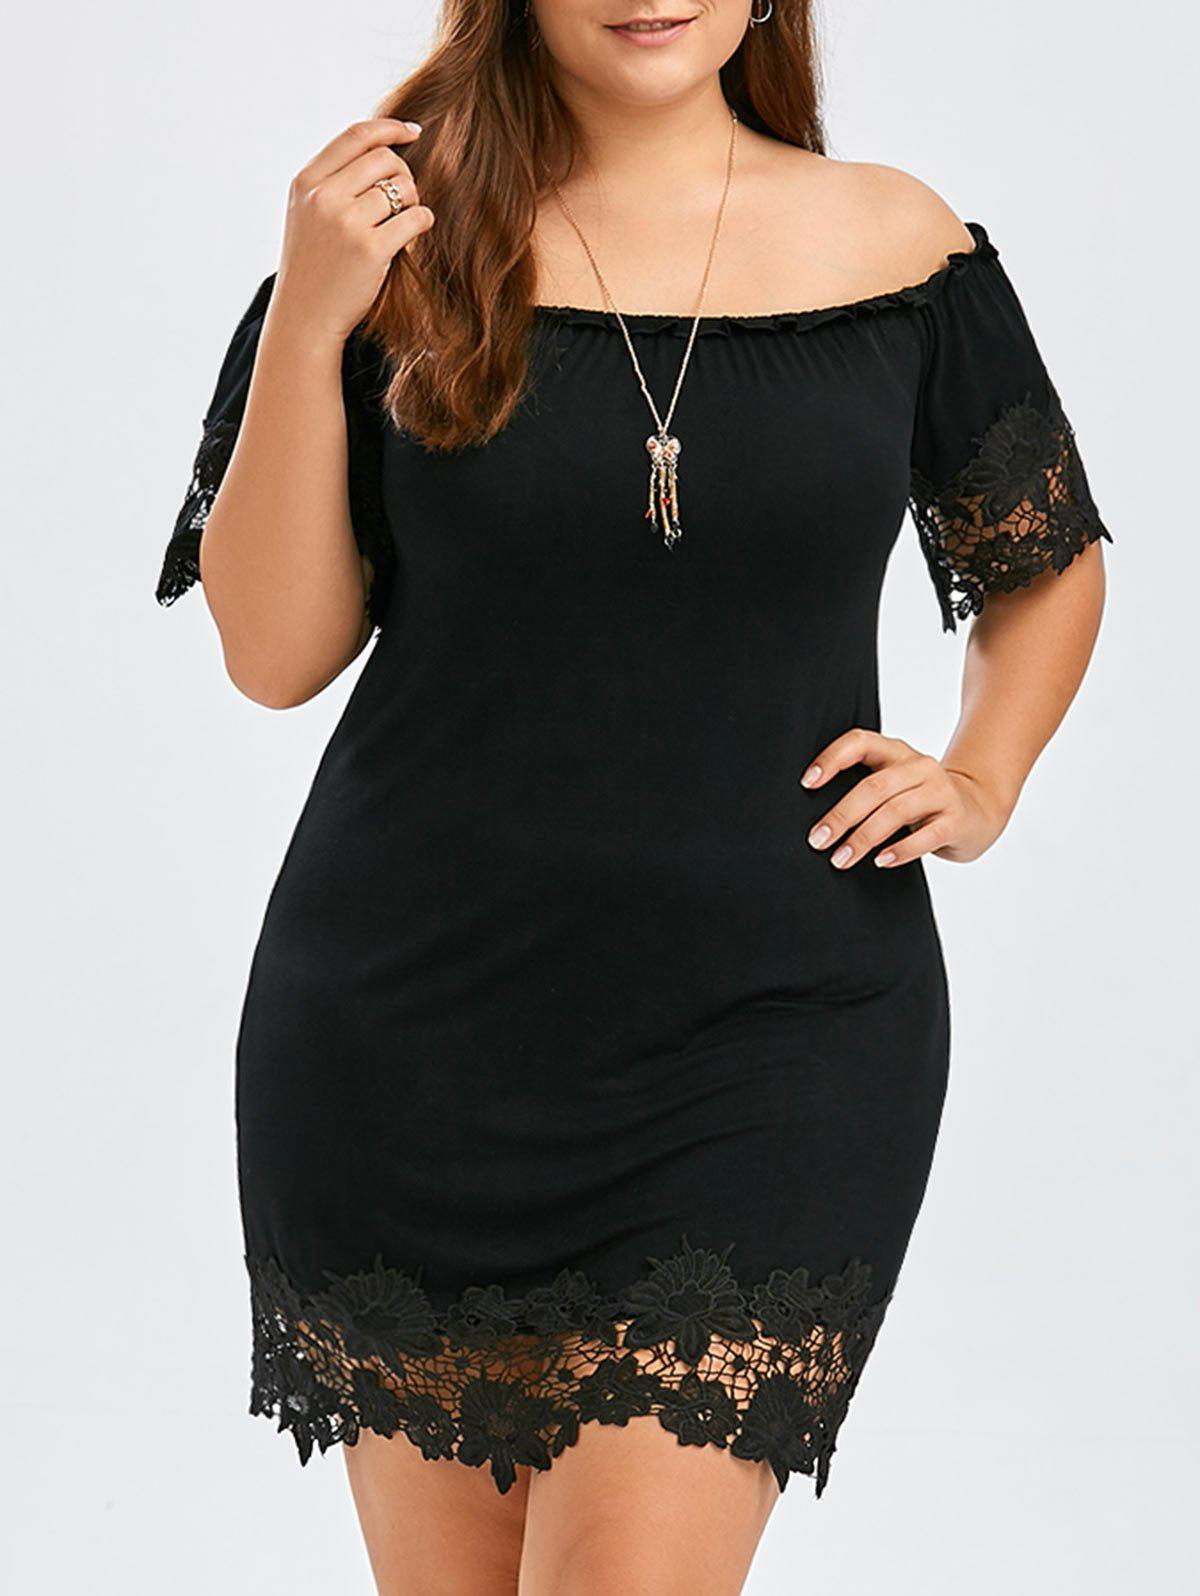 f24254a99cf8 58% OFF   2019 OFF Shoulder Plus Size Cocktail Mini Tight Dress ...